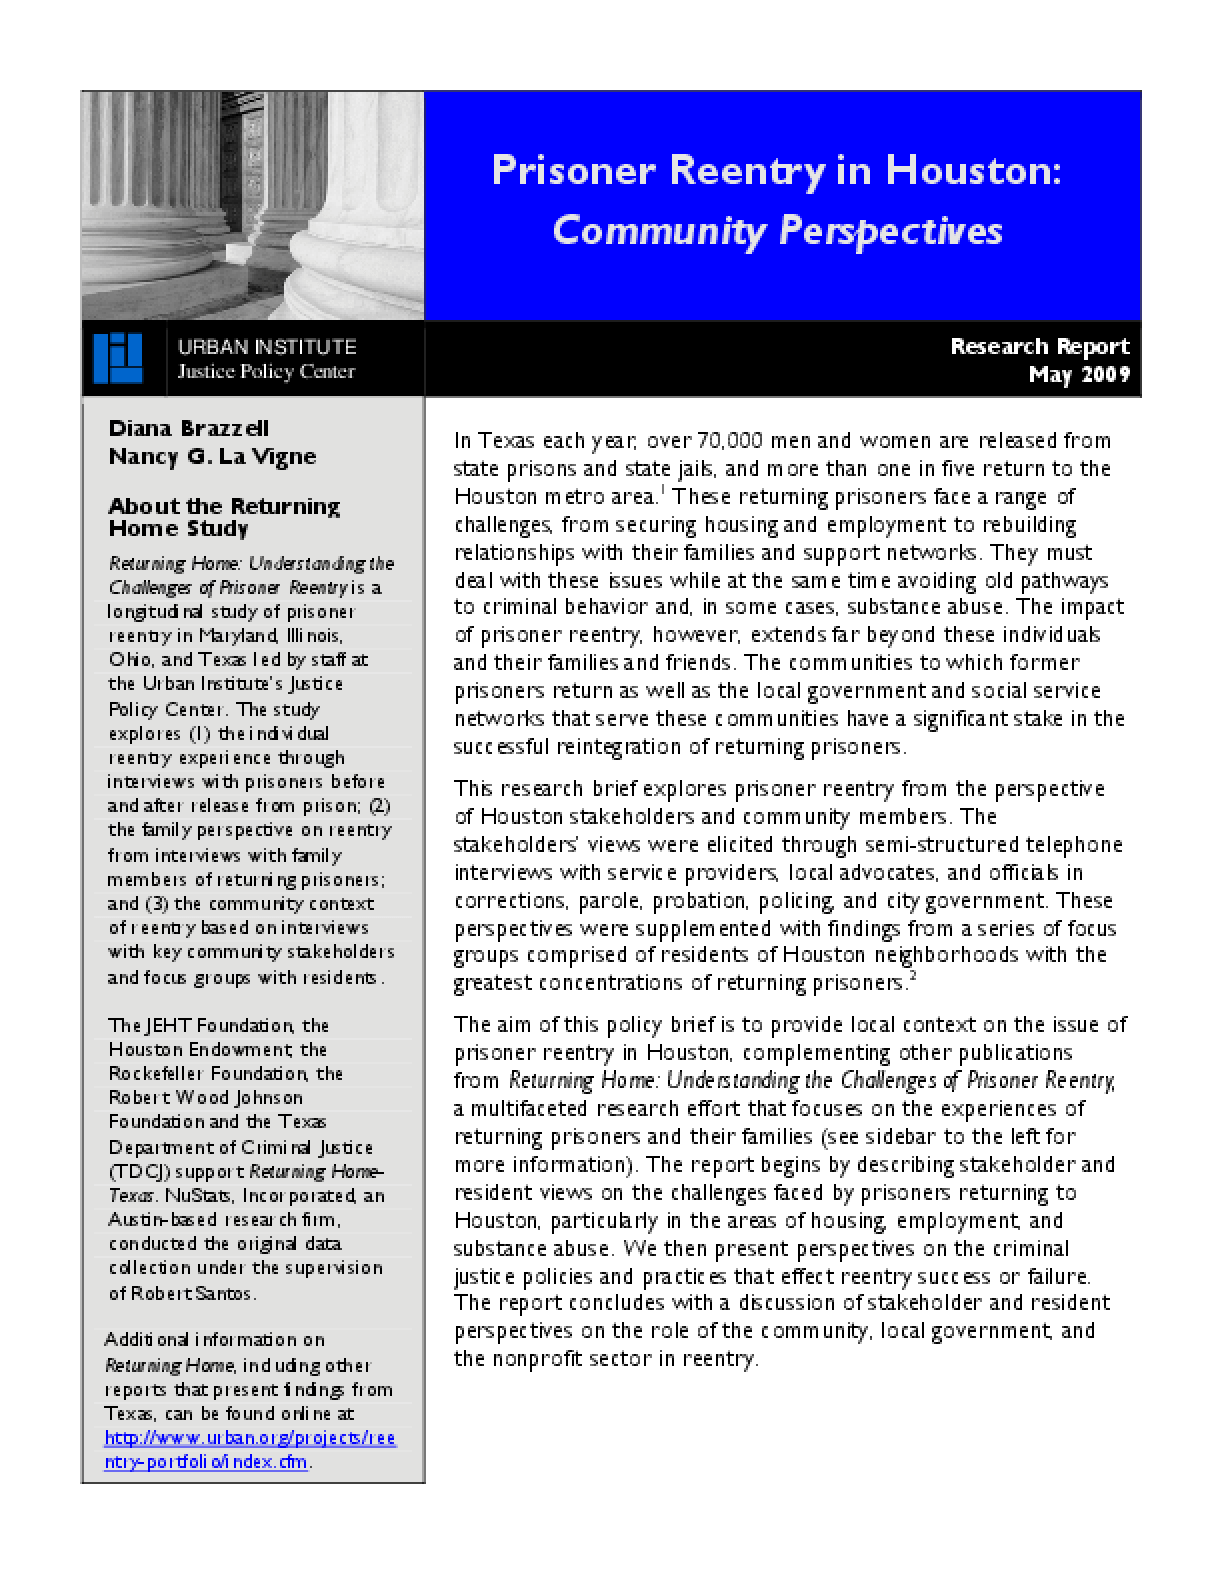 Prisoner Reentry in Houston: Community Perspectives